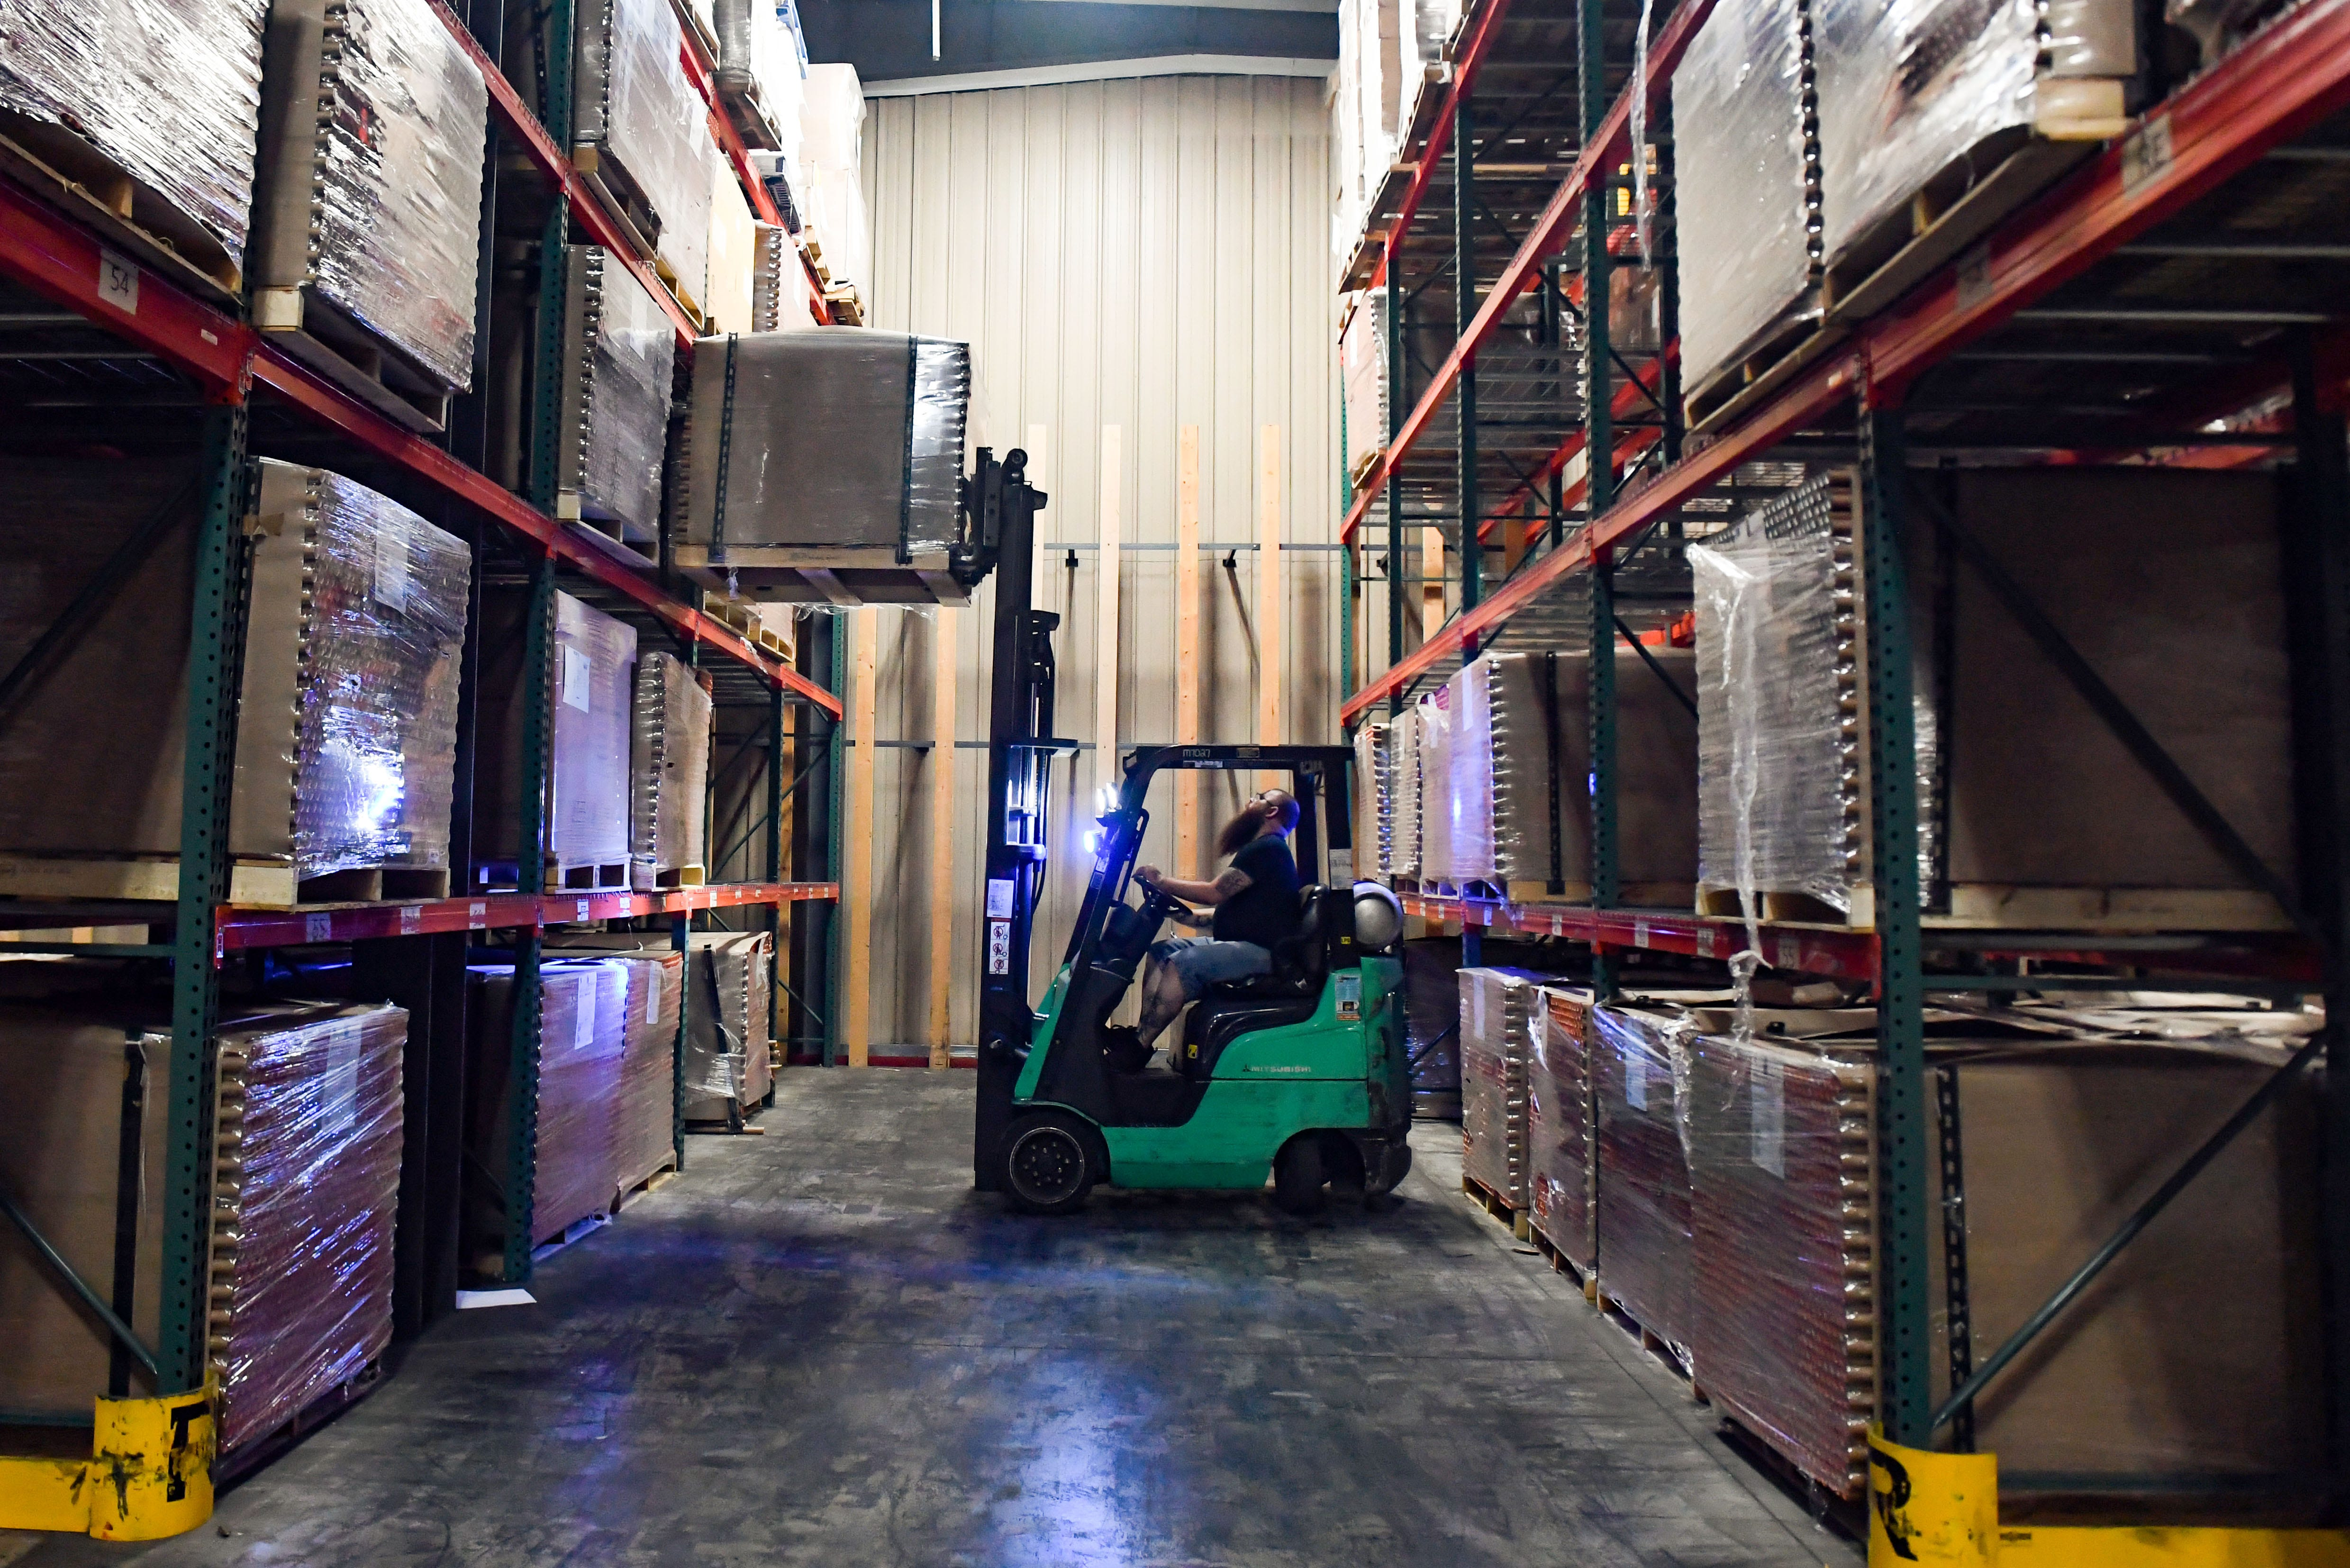 Photos: Nordica Warehouses, Inc. holds supplies for companies across the globe